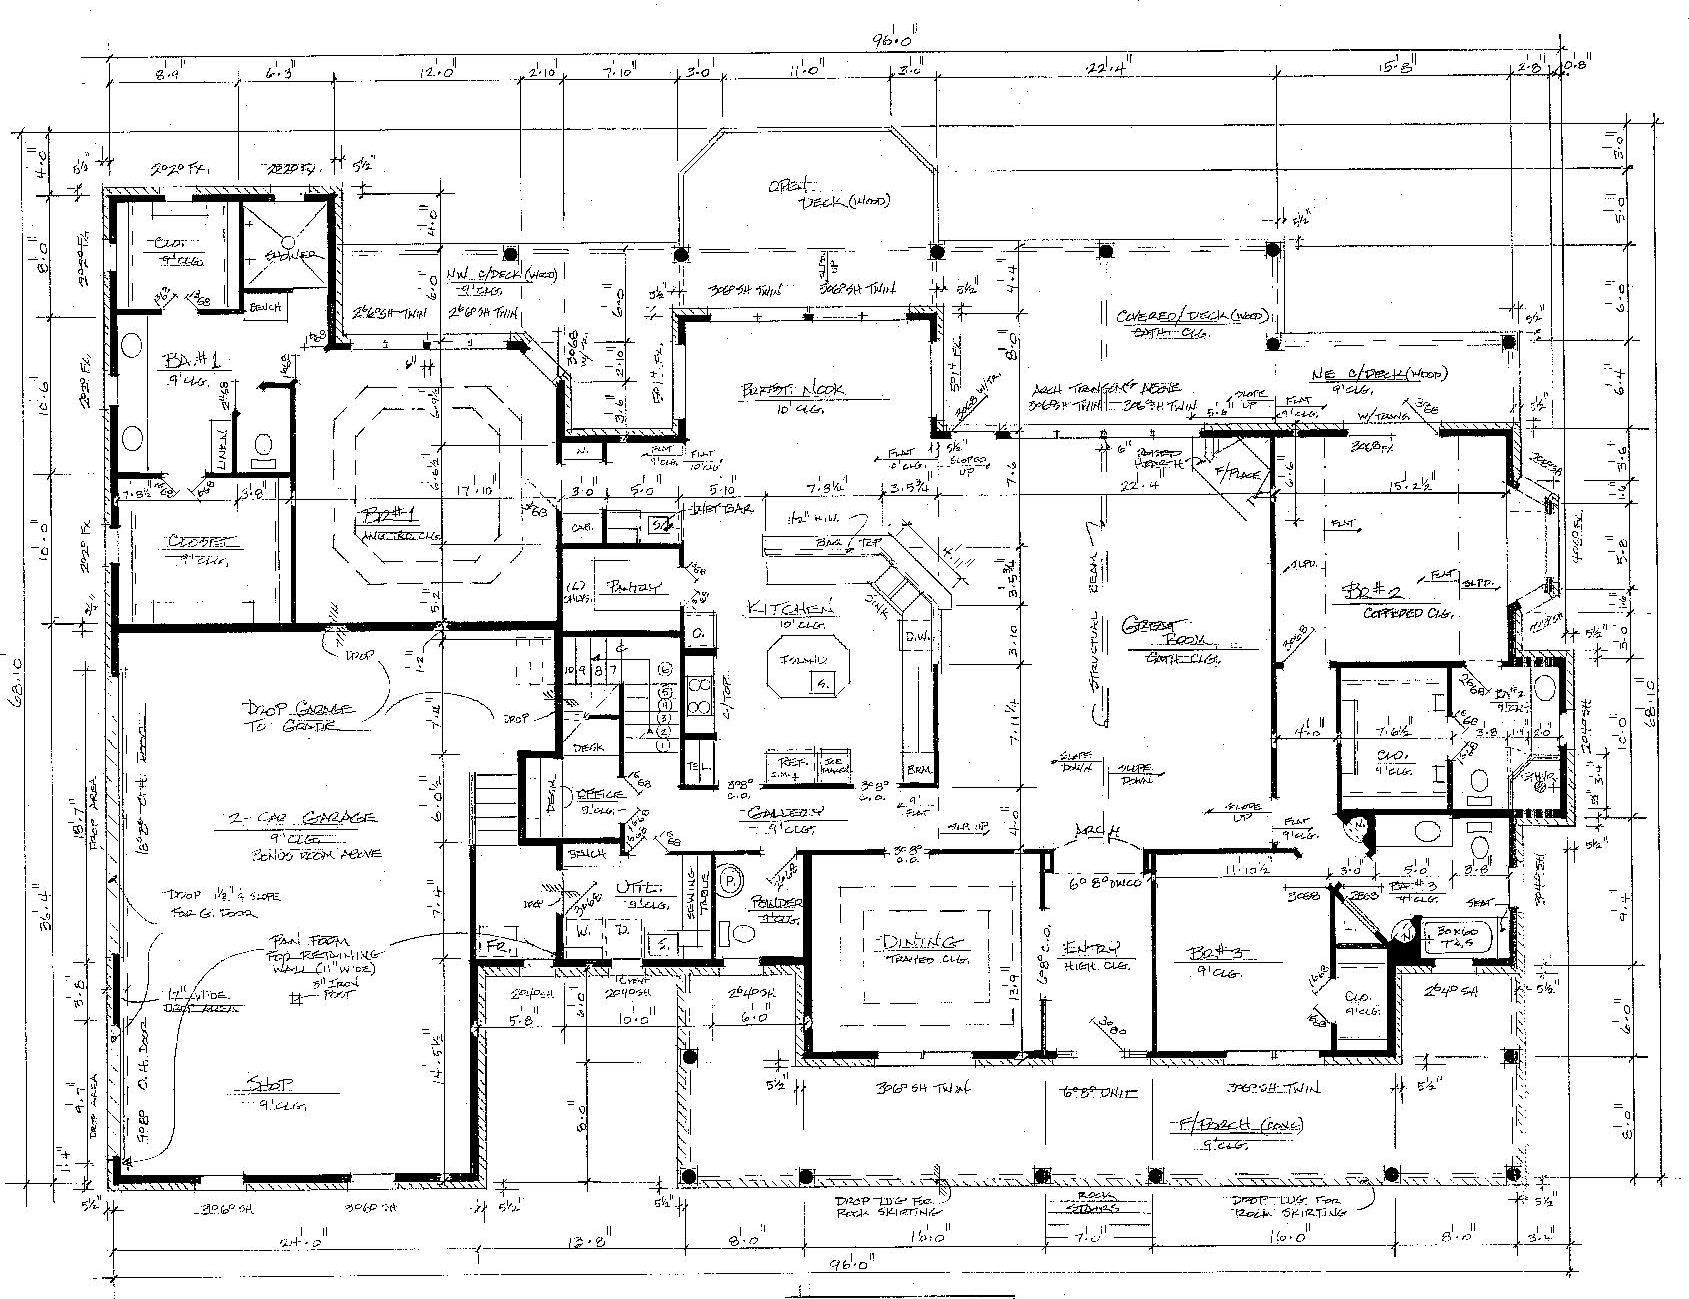 How To Draw A Scale Drawing at GetDrawings.com | Free for ... Scale Drawing Of House Floor Plans on scale drawing examples, scale drawing bathroom, scale drawing detail, scale drawing model, scale drawing bedroom, scale drawing layout, scale drawings for students, scale drawing map, scale drawing building, orthographic drawing floor plan, autocad drawing floor plan, scale drawing living room, scale drawing kitchen, scale drawing activities, line drawing floor plan, scale drawing of a room, scale drawing furniture, scale drawing lesson plans,